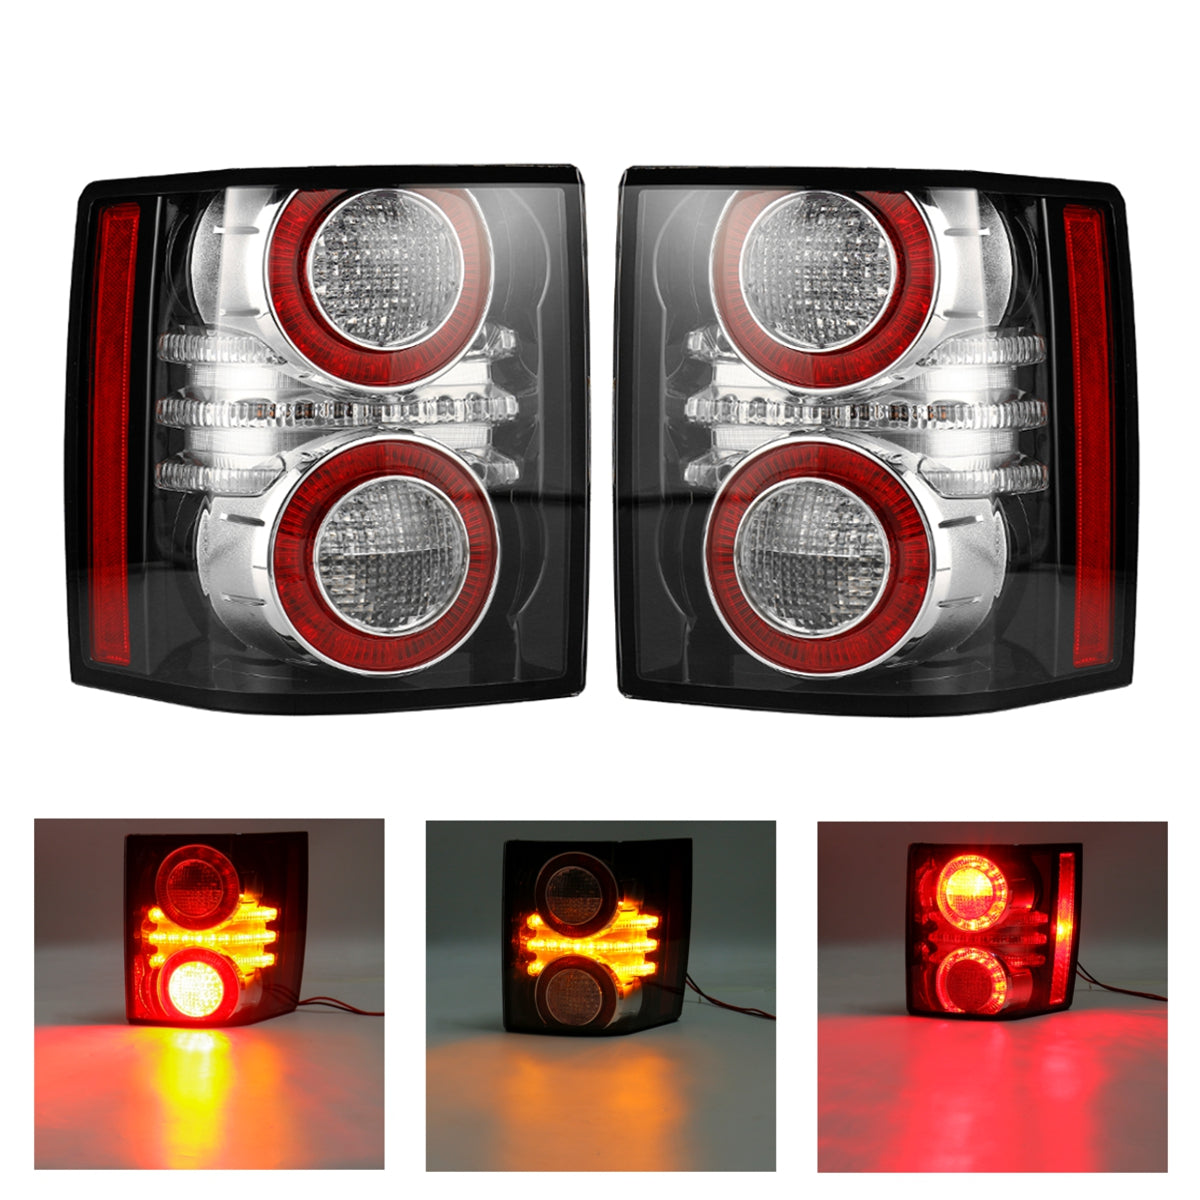 Land Rover Range Rover 2010-2012 Rear Tail Lights Assembly with LED Bulbs